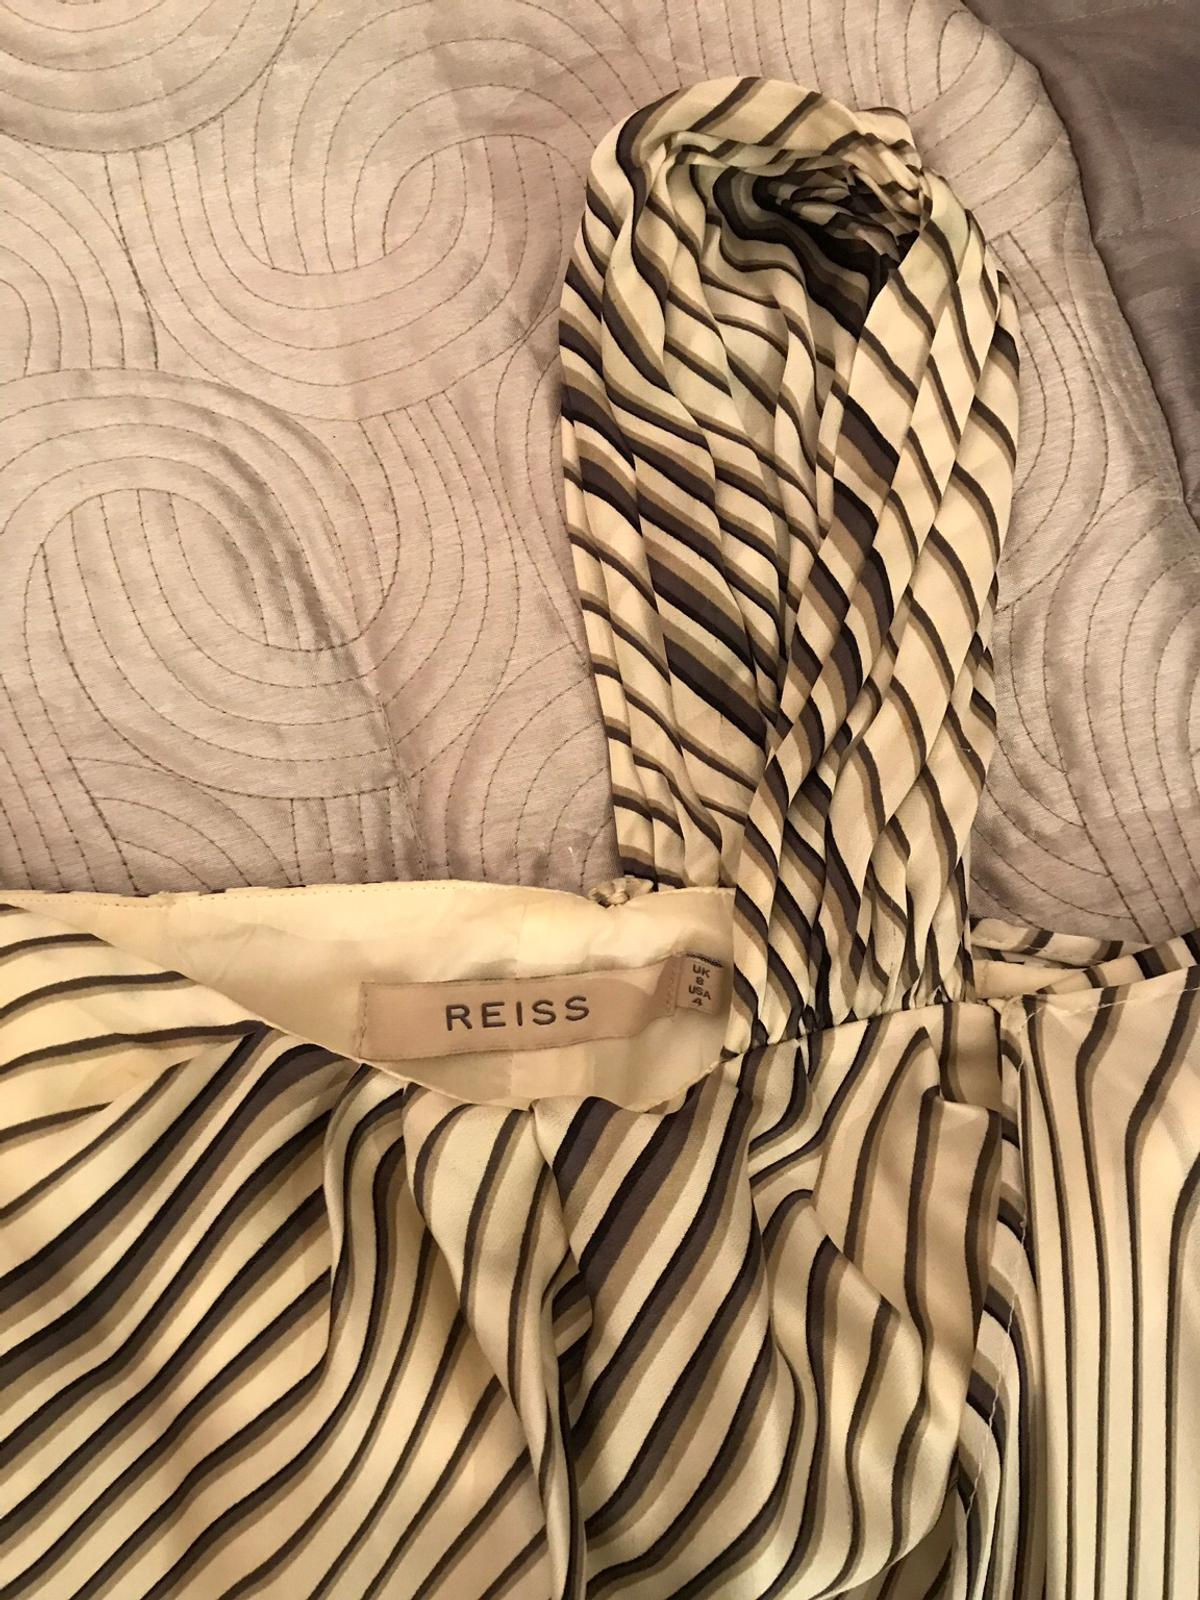 Grecian style dress from Reiss. UK size 8.